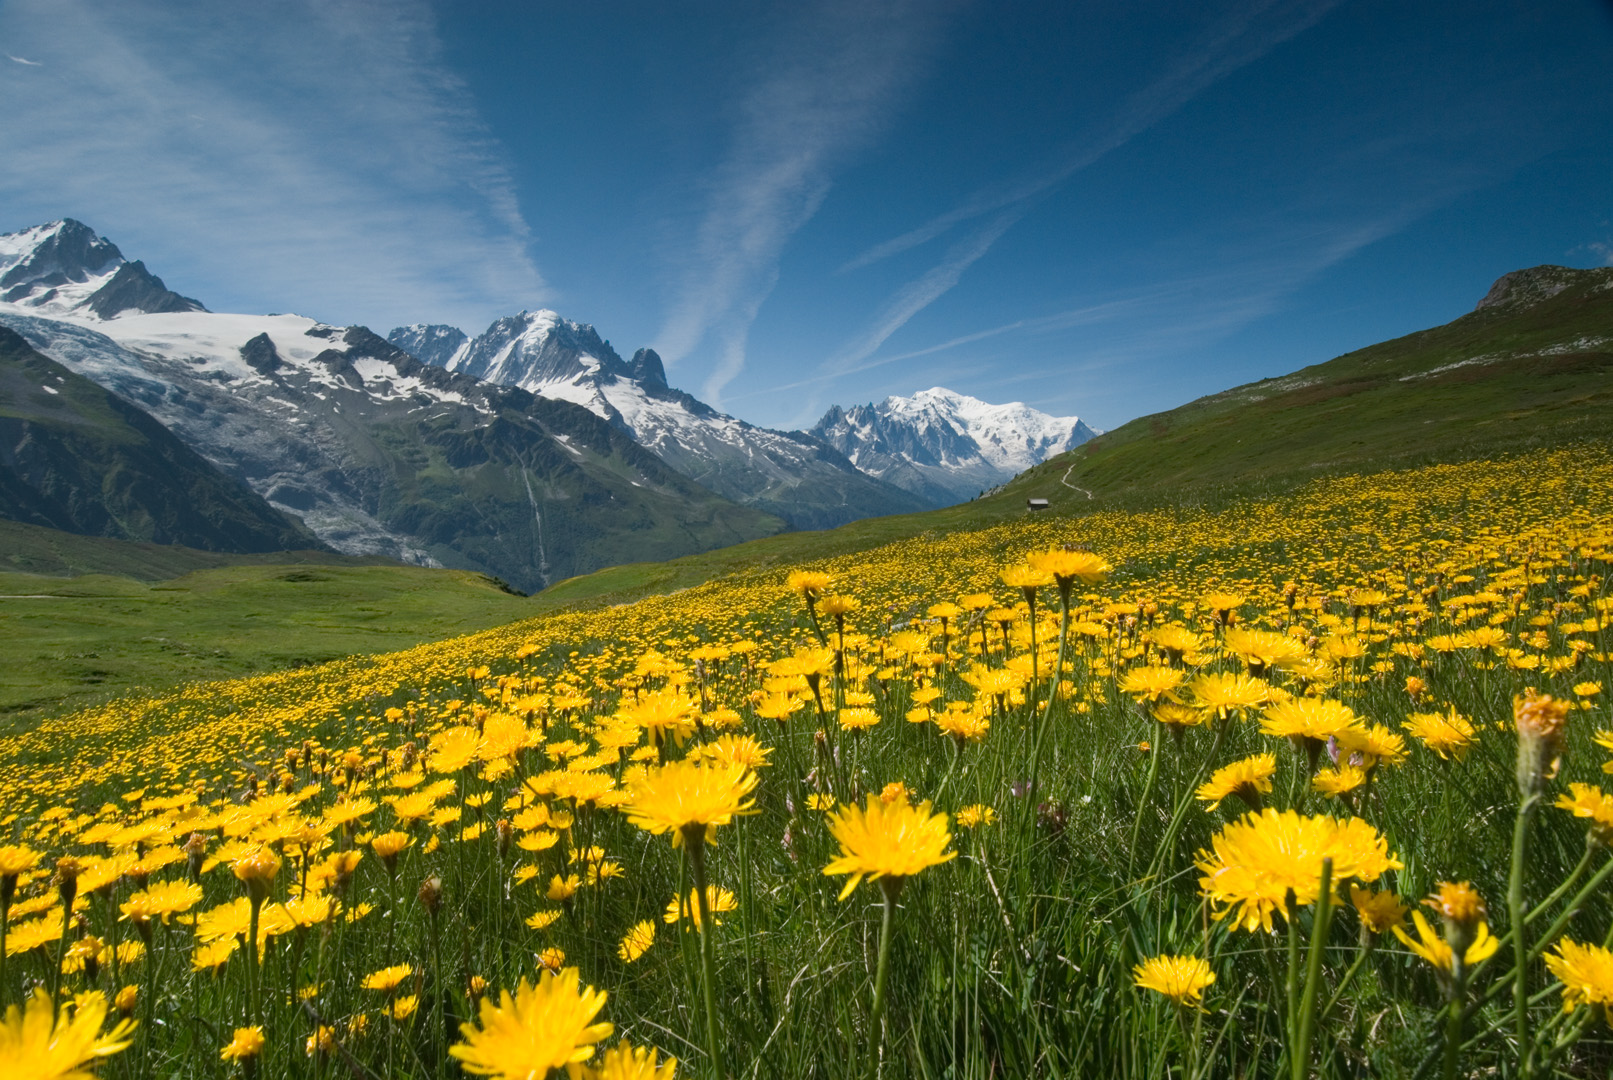 Maximising depth of field in landscape photography